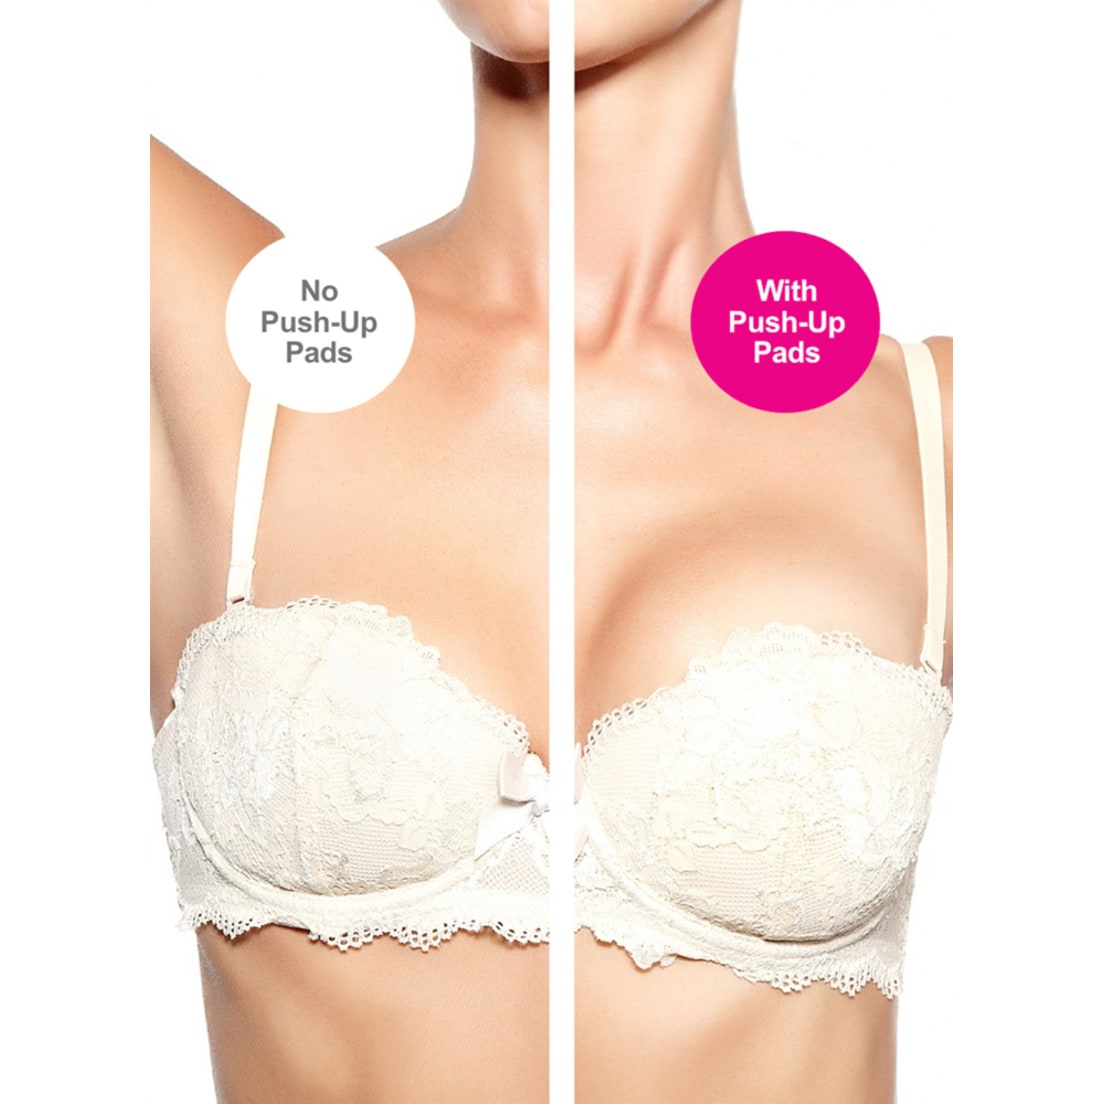 731a8f7808 Bra Society Silicone Pushup Inserts